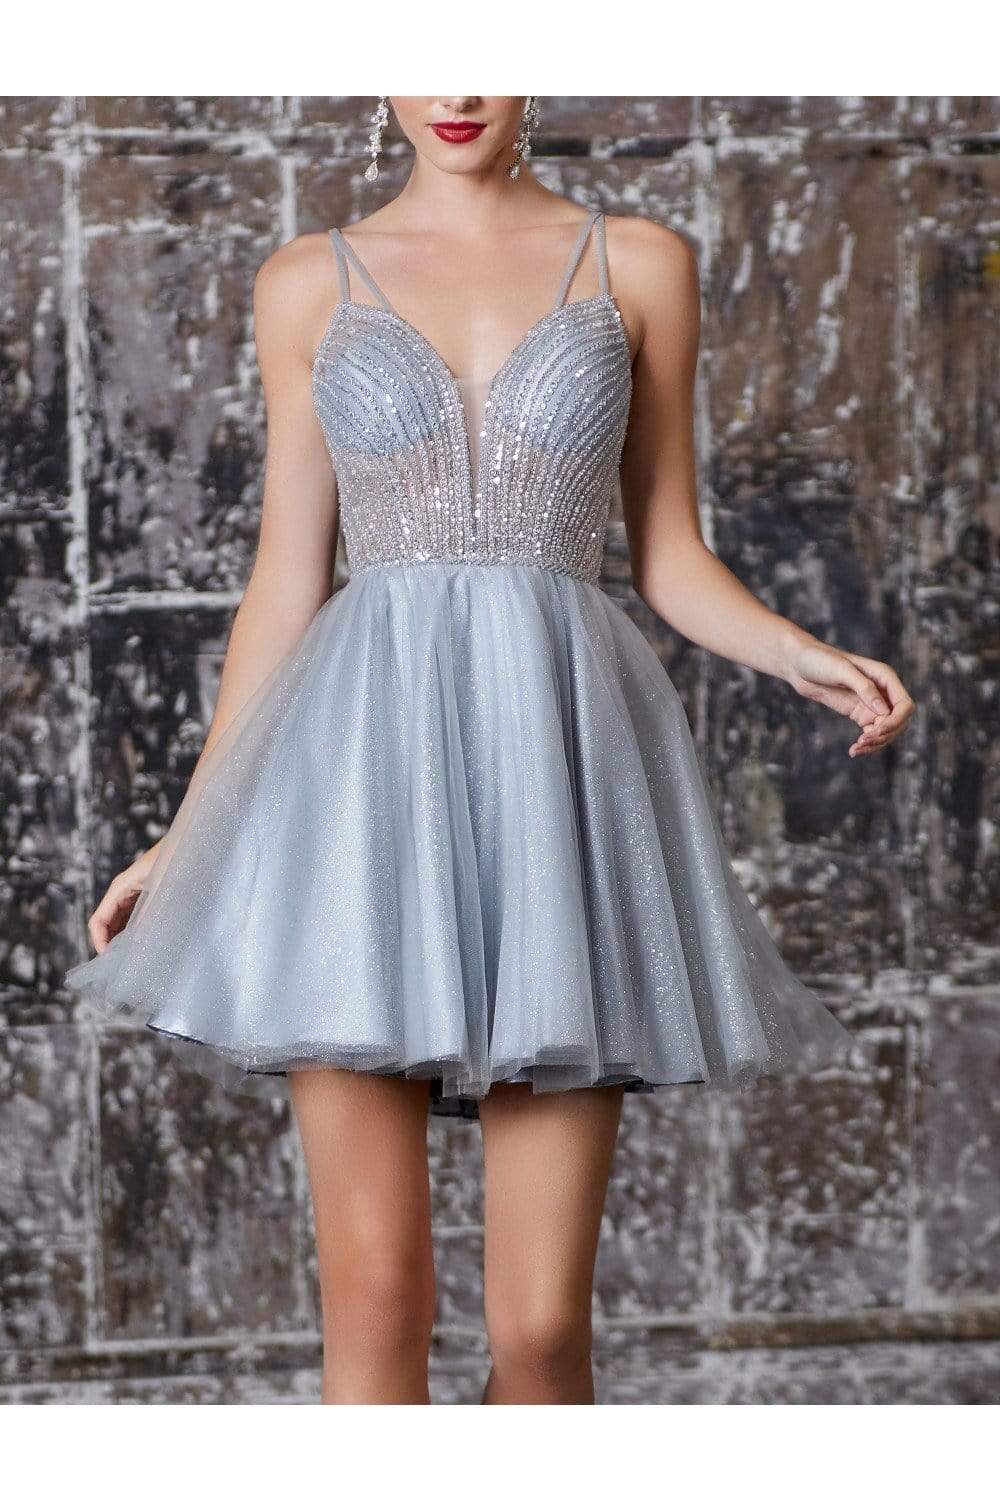 Cinderella Divine - CD0148 Beaded Embellished Fit and Flare Dress In Silver